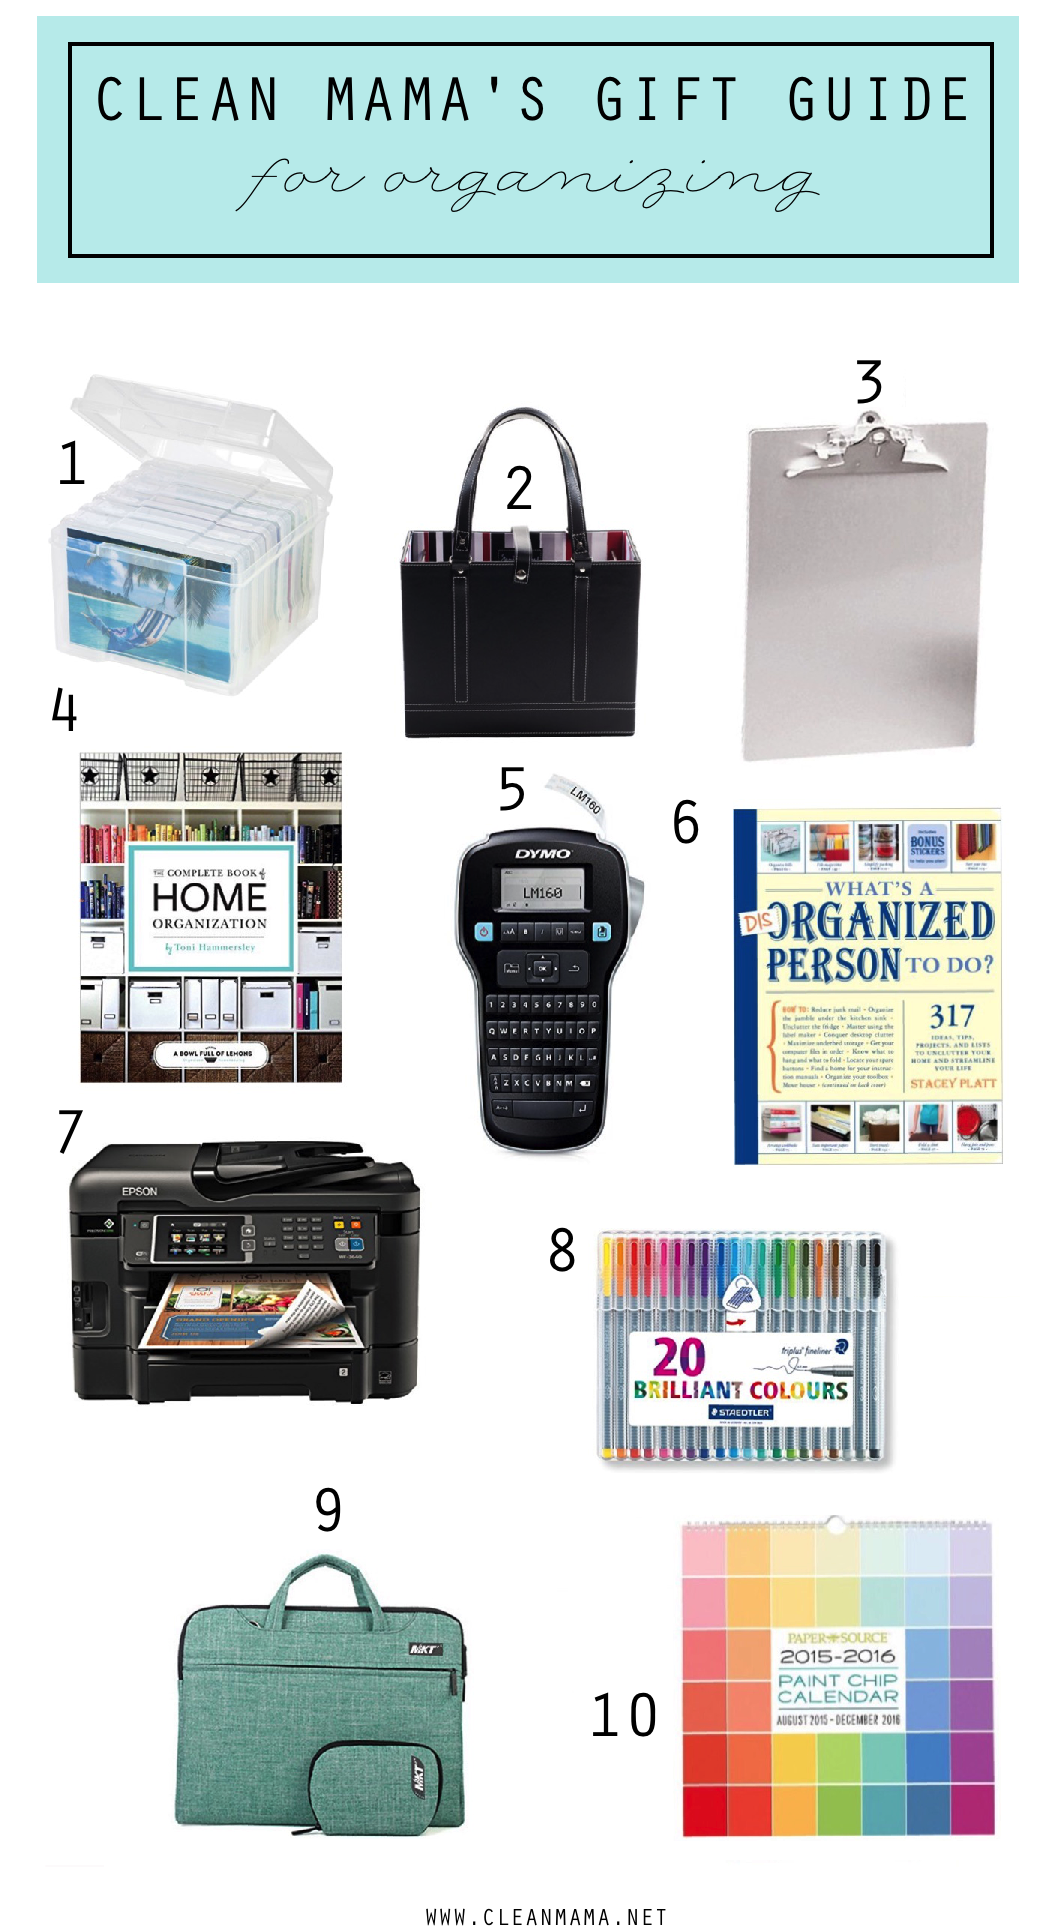 Clean Mama's Gift Guide for Organizing